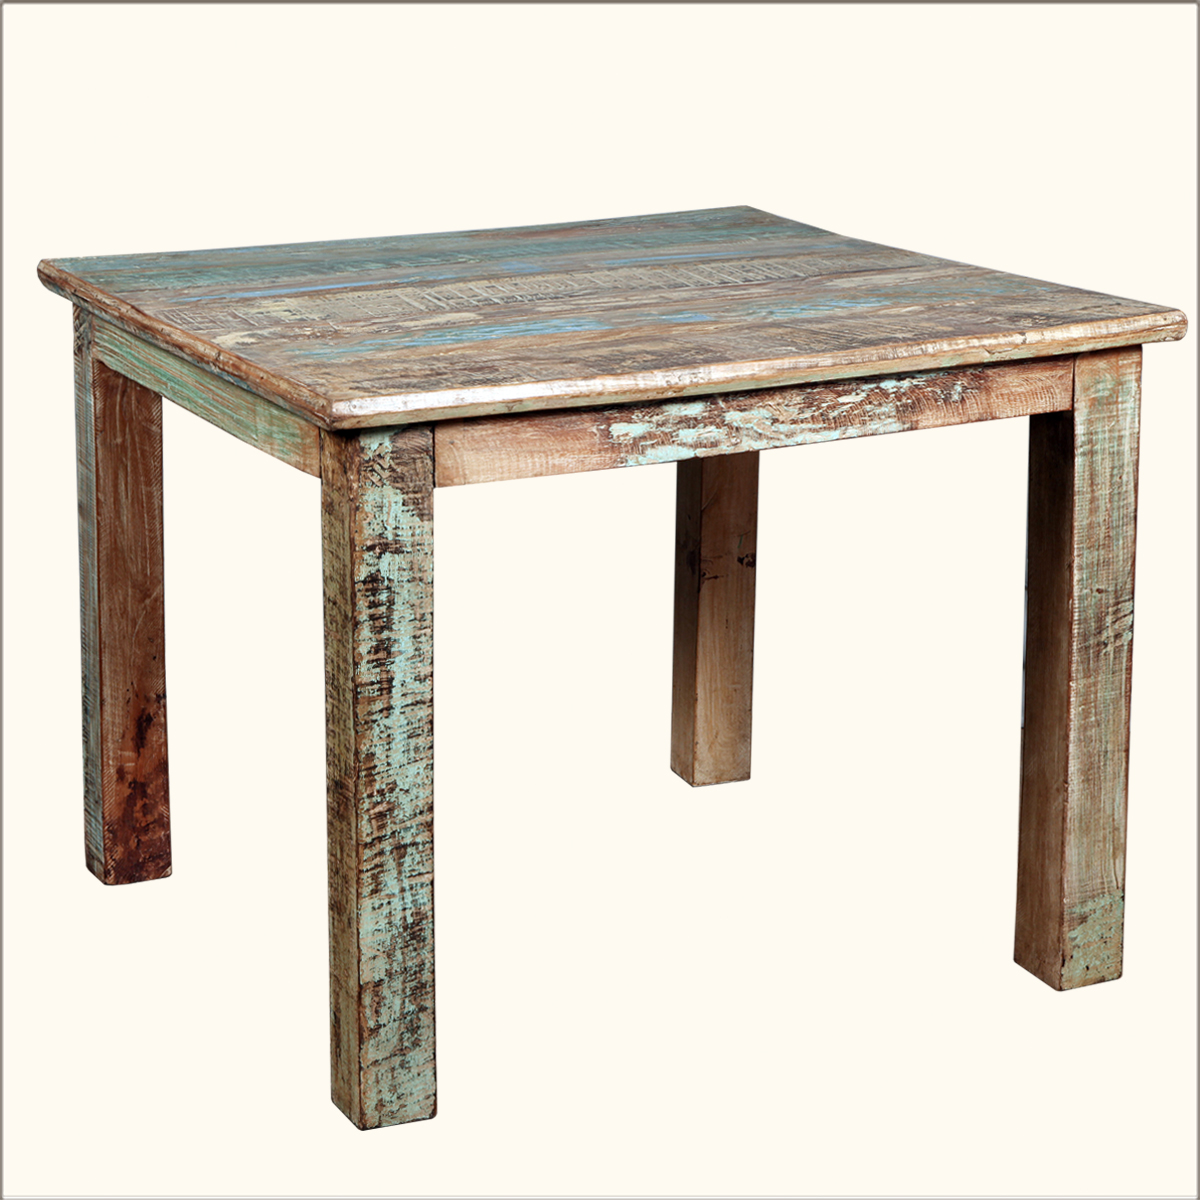 Reclaimed Wood Table ~ Rustic reclaimed wood distressed quot square kitchen dining